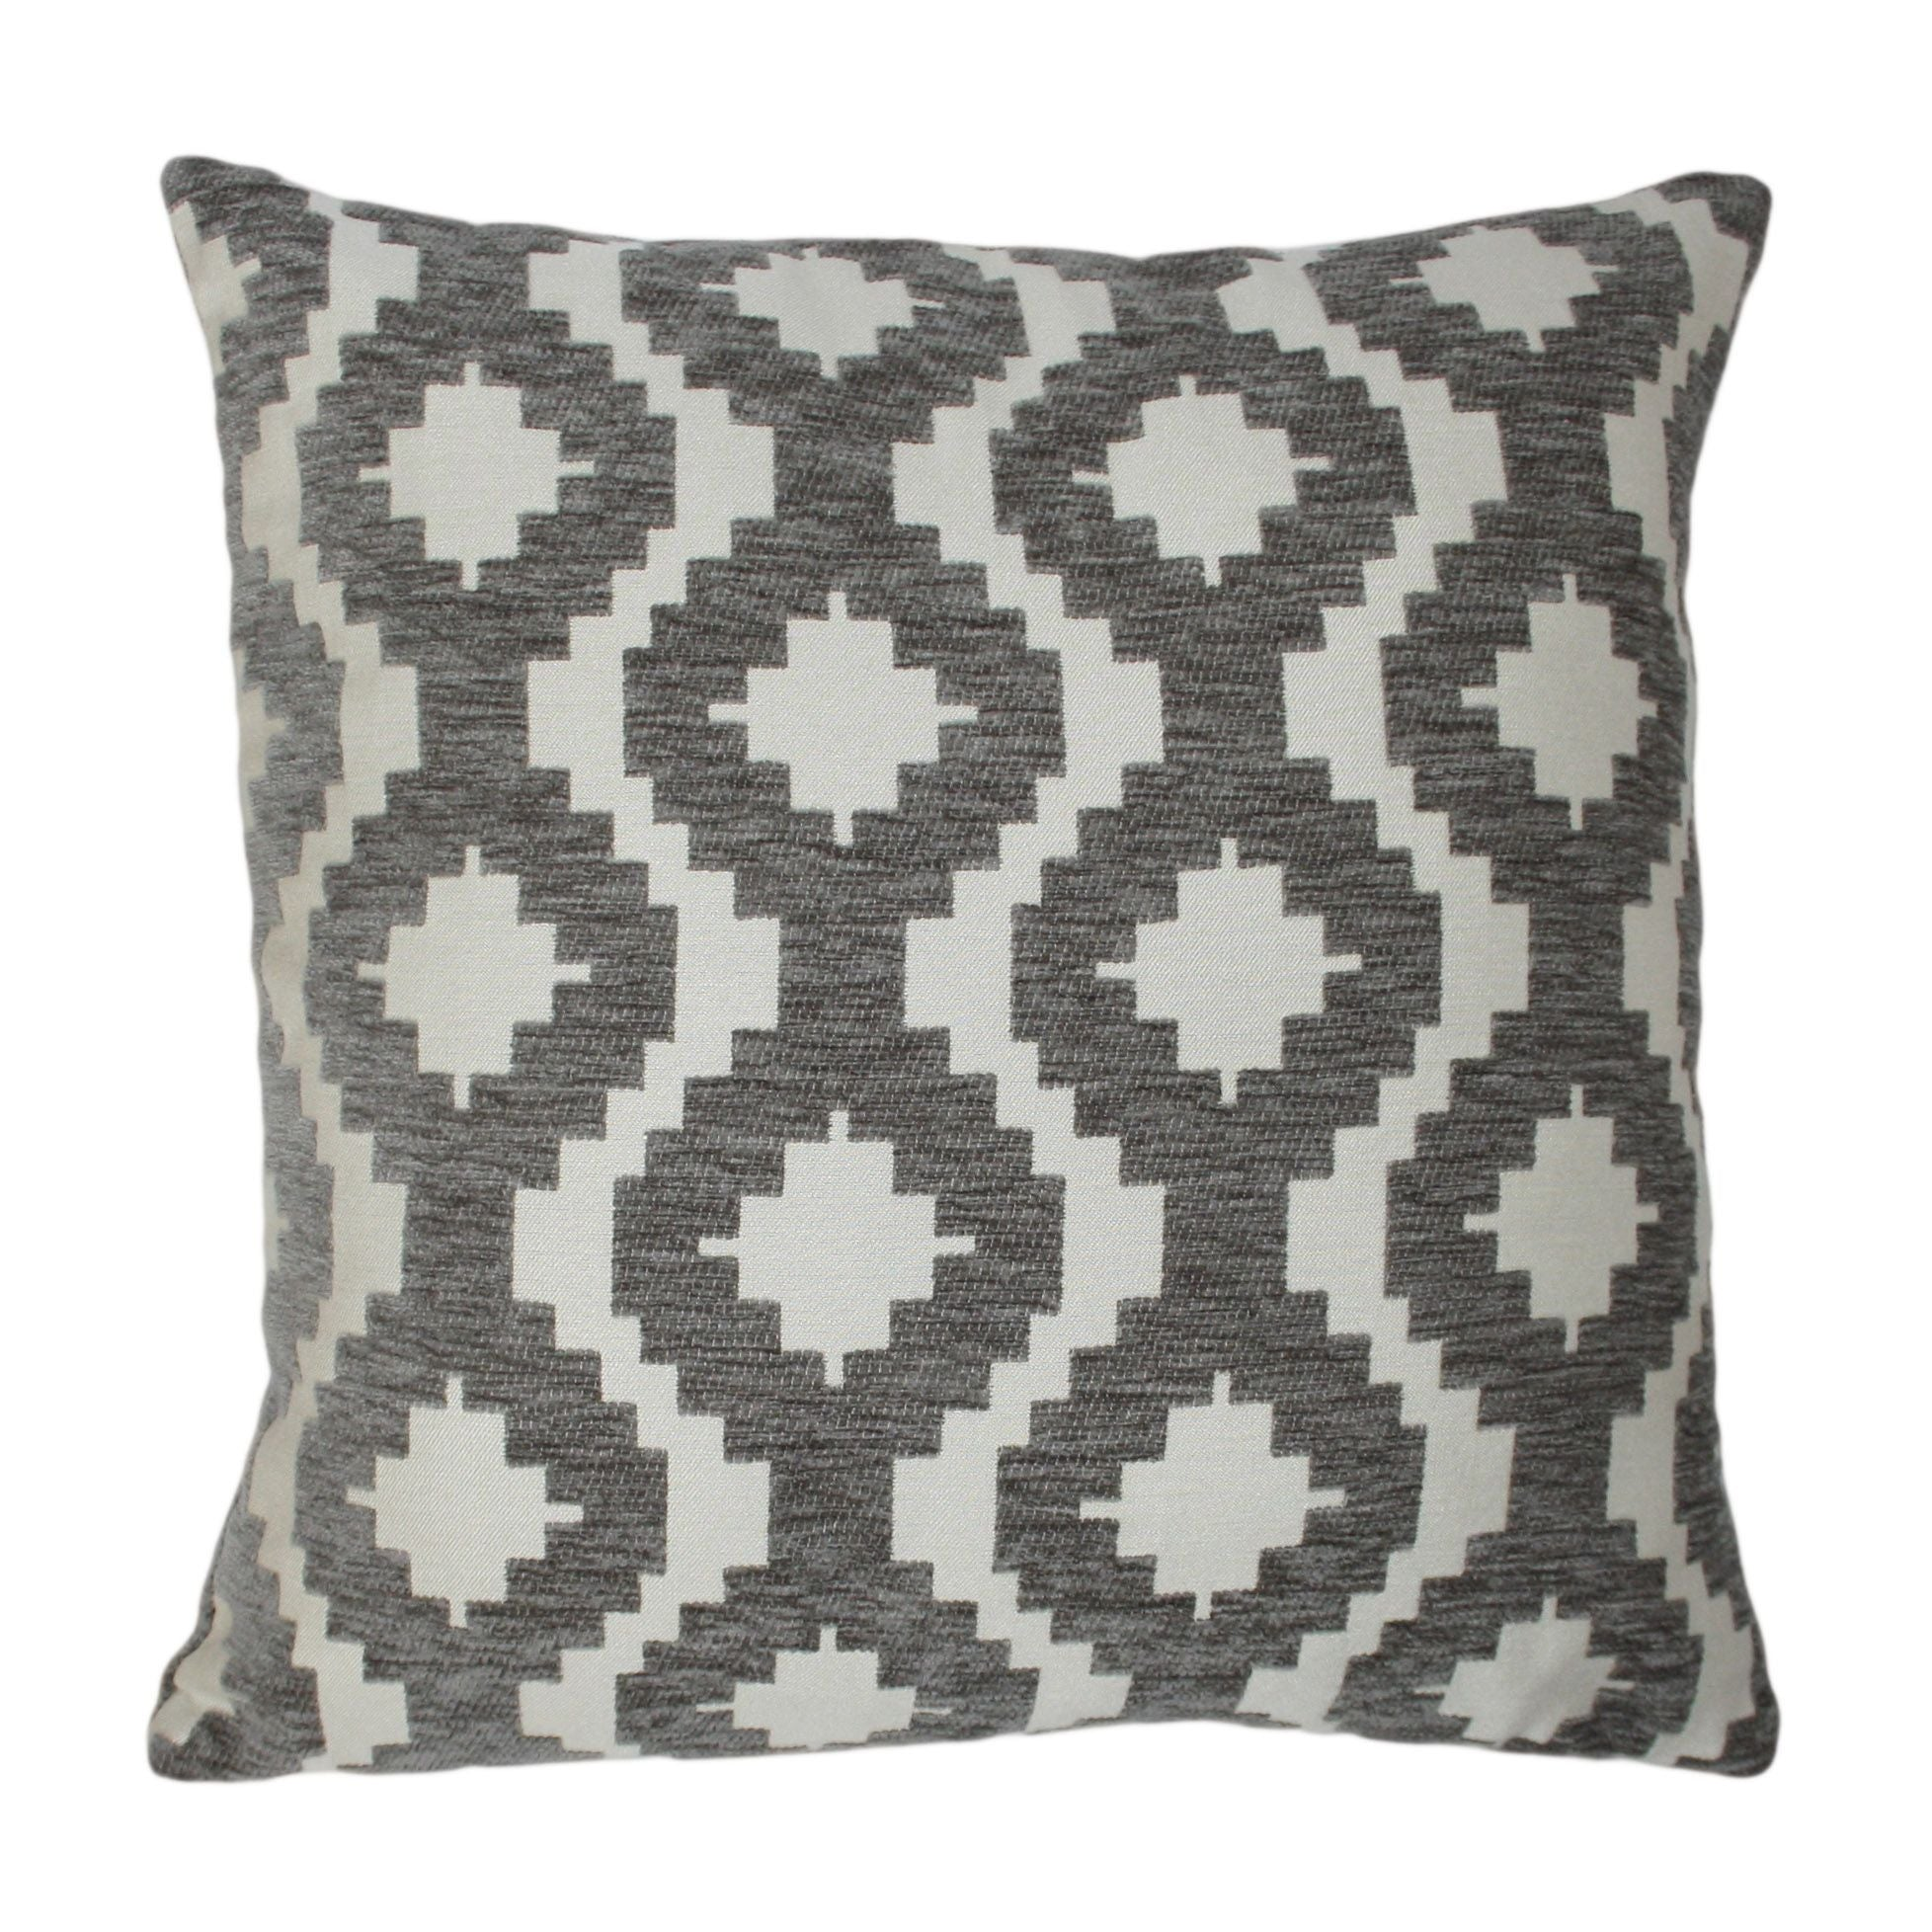 McAlister Textiles Arizona Geometric Charcoal Grey Pillow Pillow